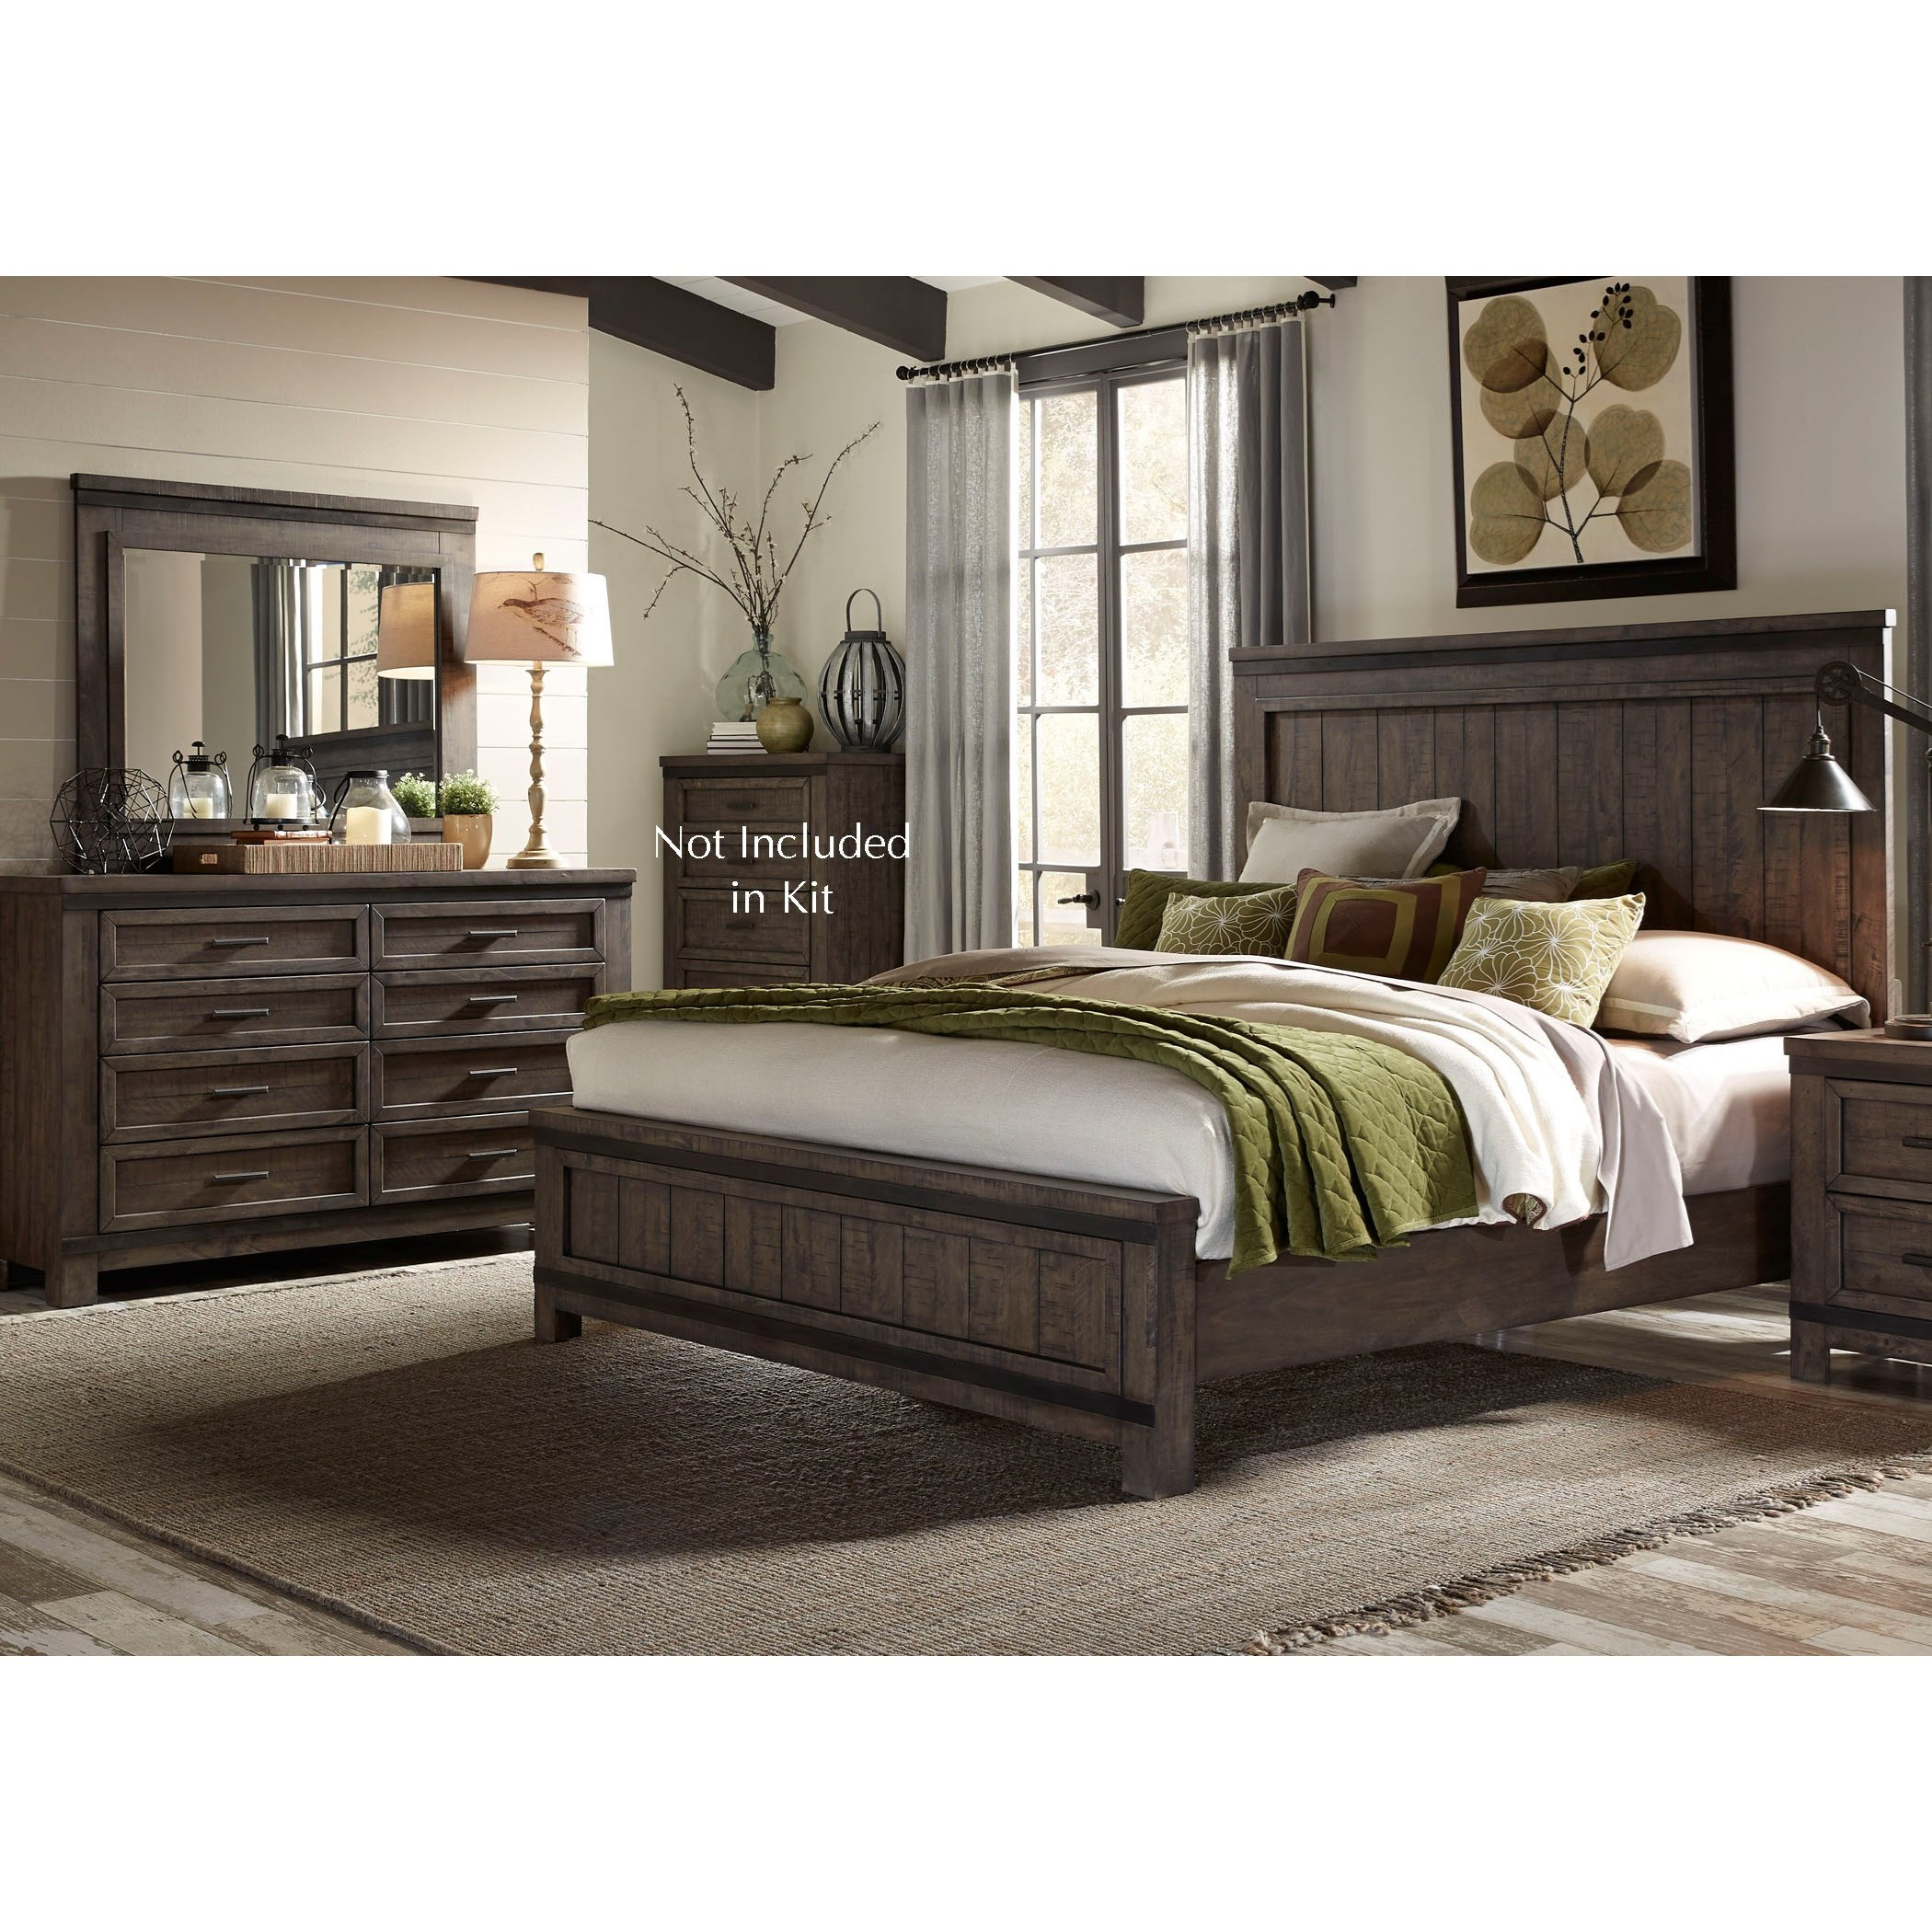 Thornwood Hills Queen Bedroom Group by Libby at Walker's Furniture